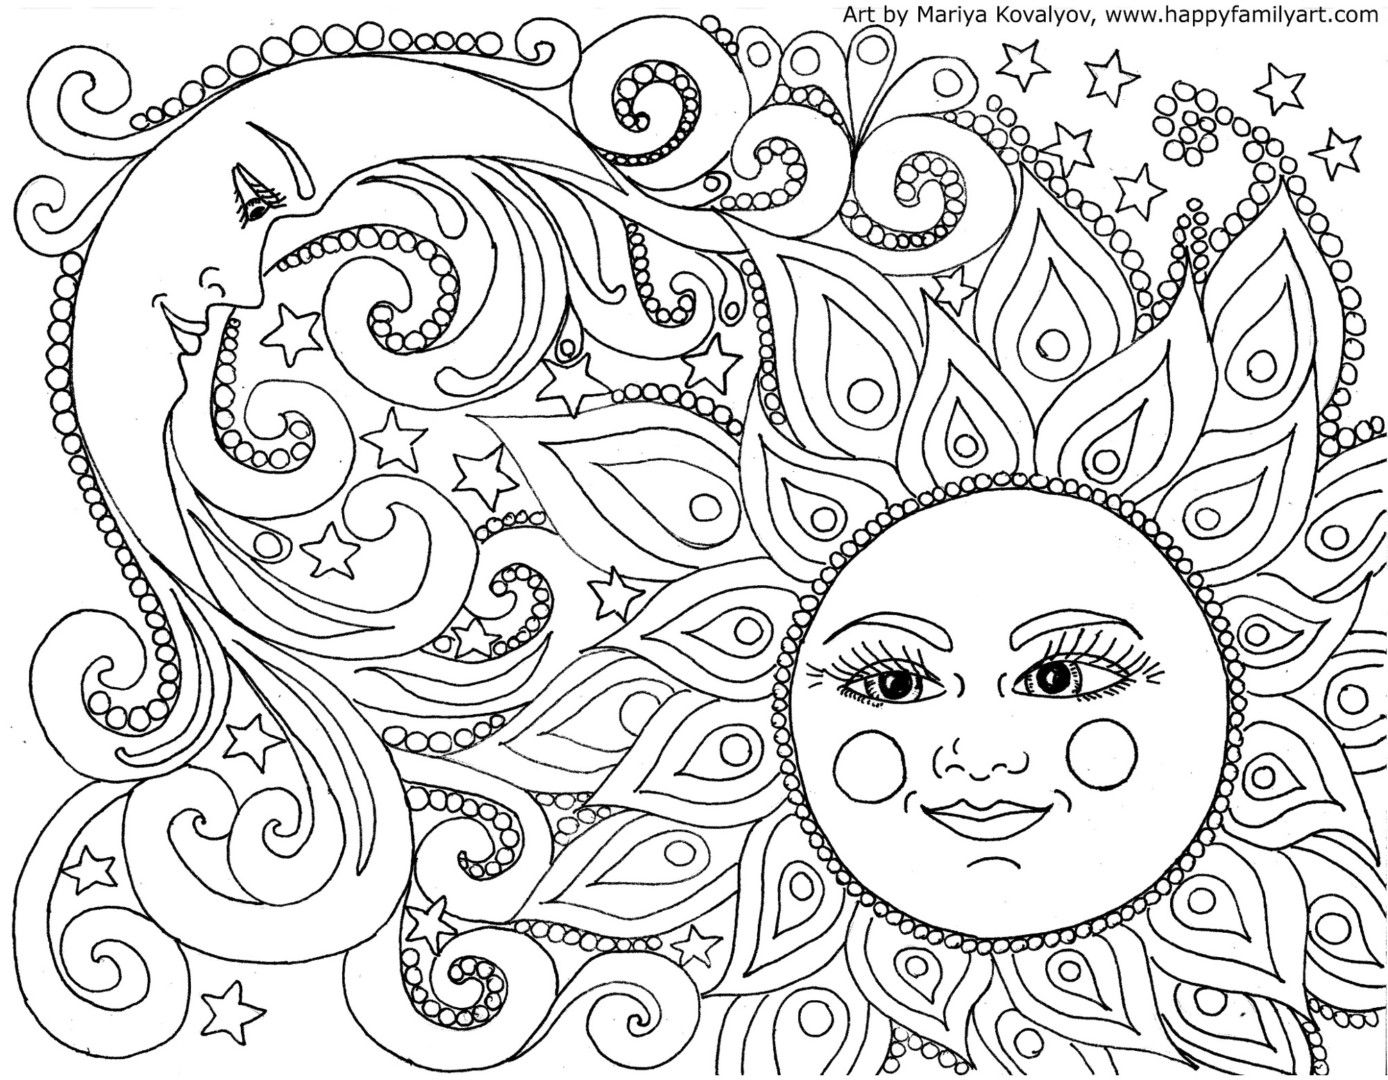 Colorings Co Fun Coloring Pages For Adults Coloring